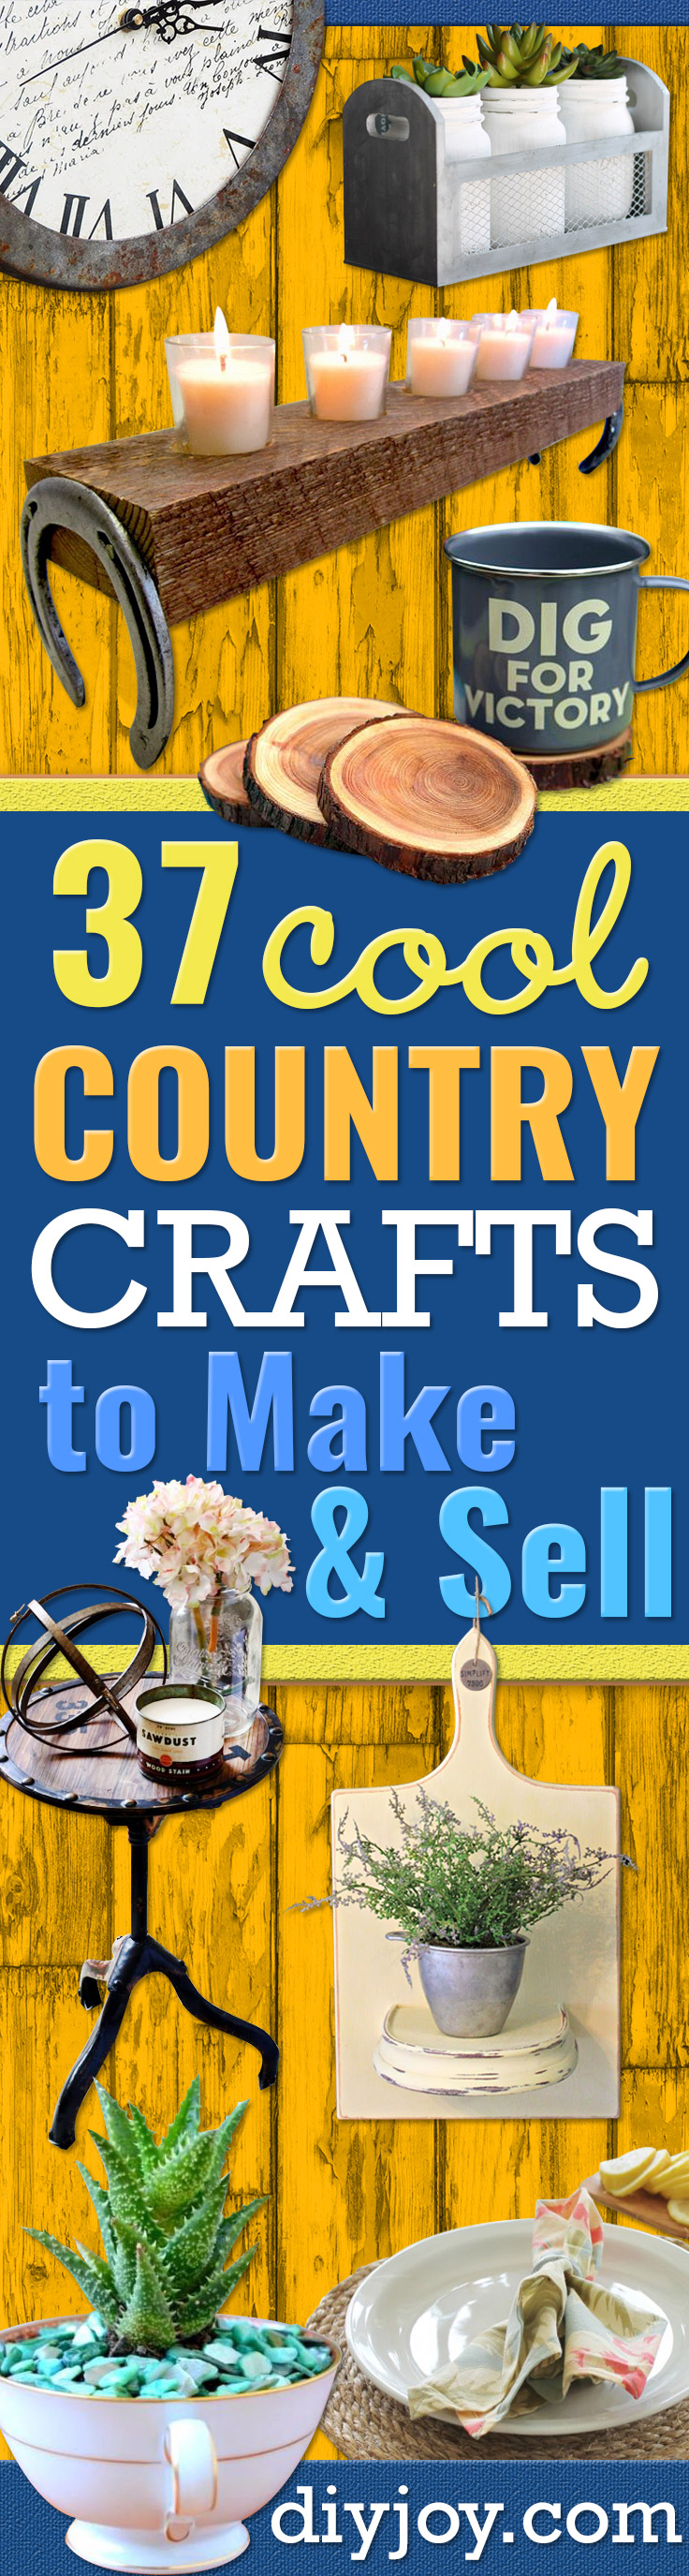 Country Crafts to Make And Sell - Easy DIY Home Decor and Rustic Craft Ideas - Step by Step Farmhouse Decor To Make and Sell on Etsy and at Craft Fairs - Tutorials and Instructions for Creative Ways to Make Money - Best Vintage Farmhouse DIY For Living Room, Bedroom, Walls and Gifts